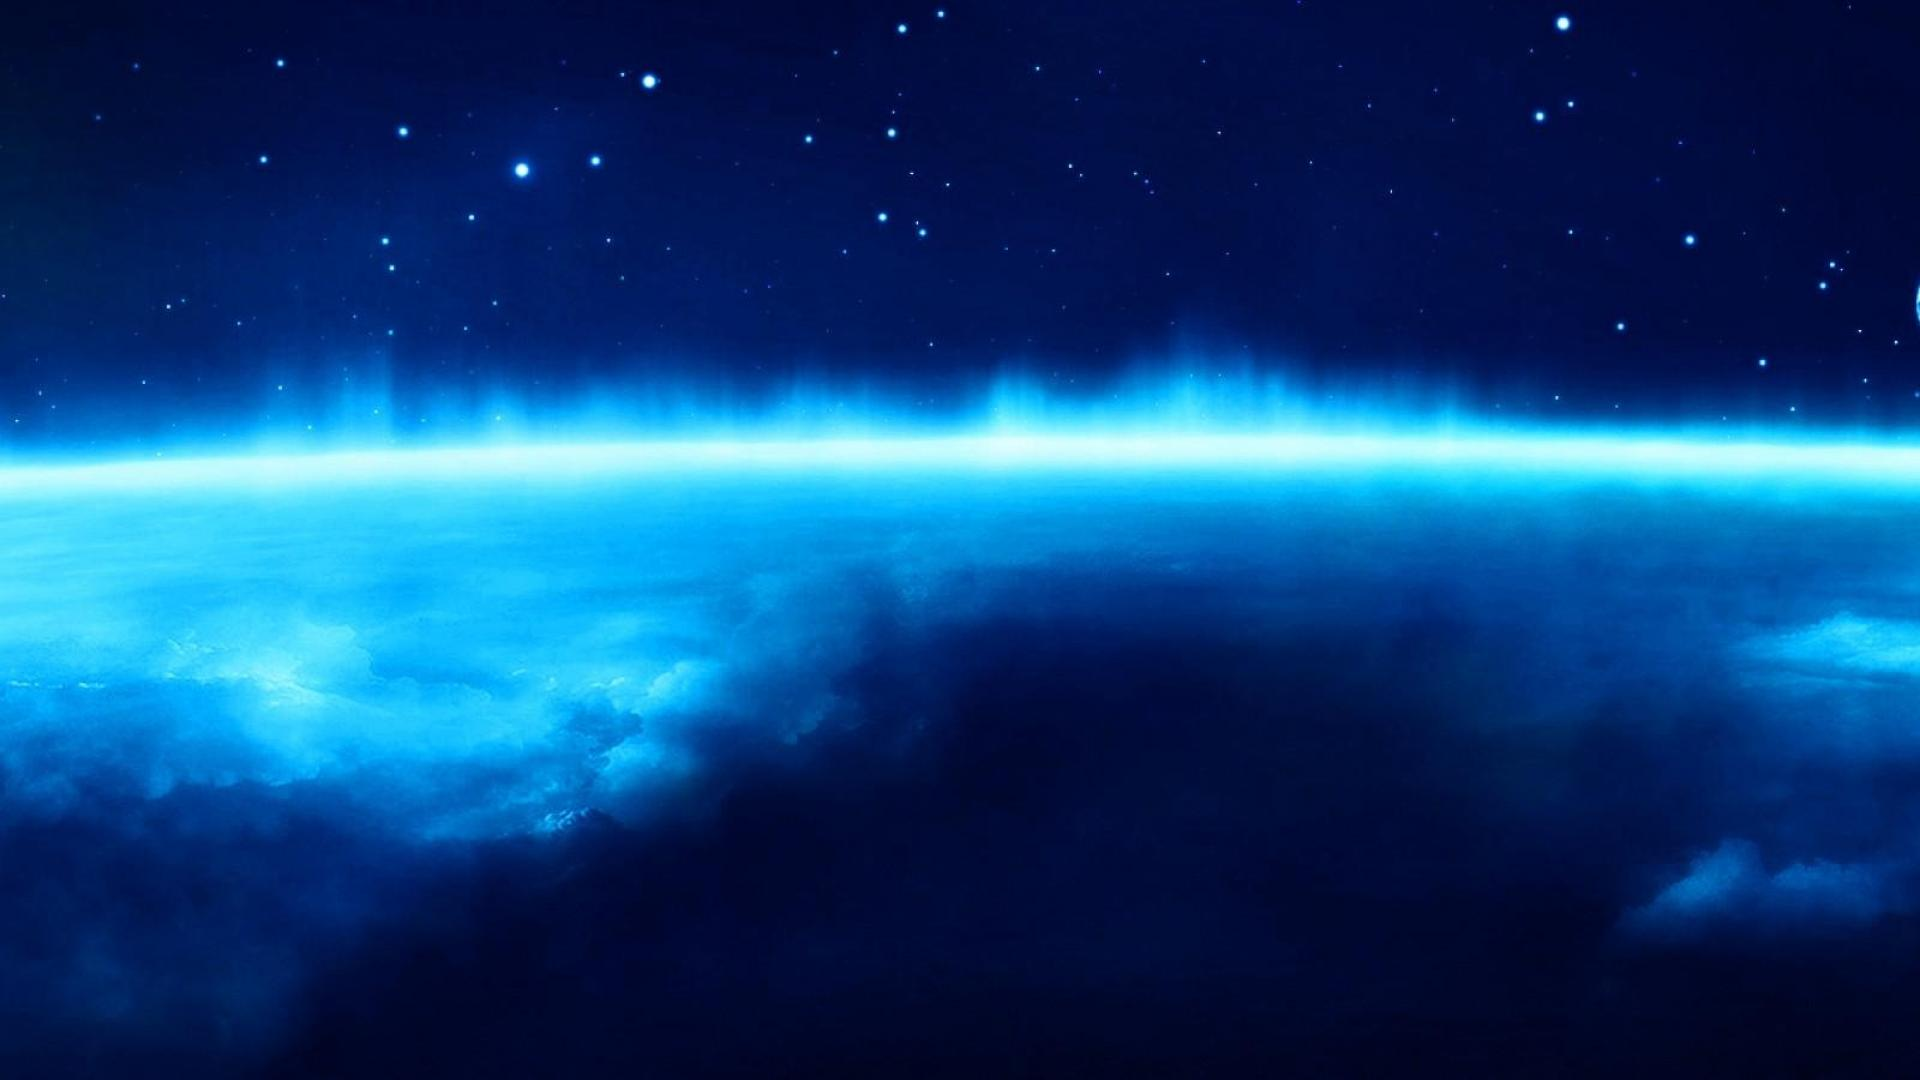 Deep Blue Space Wallpaper 1920x1080